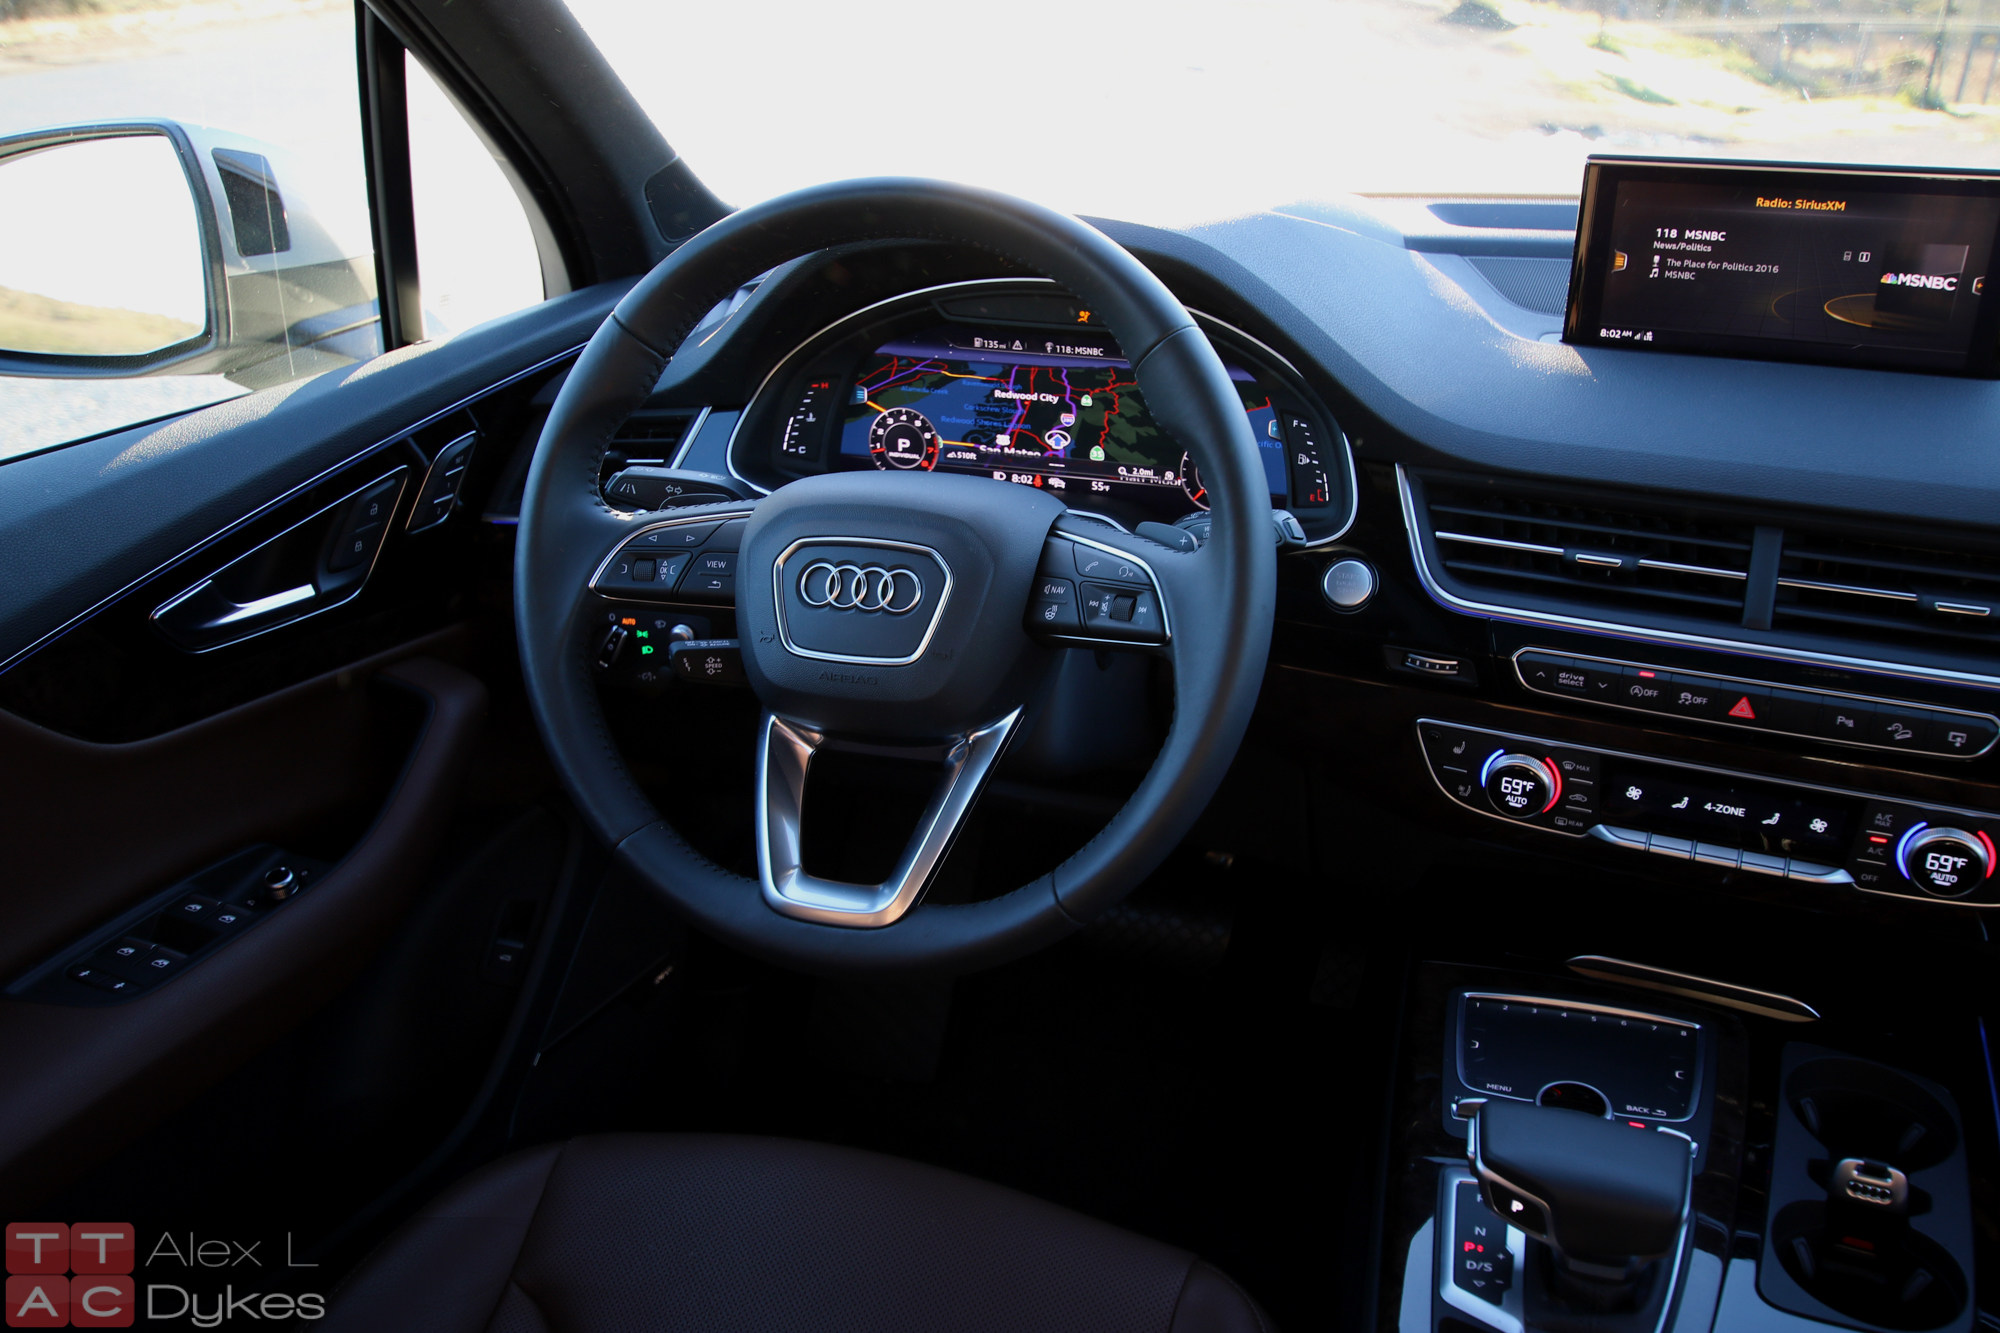 2017 Audi Q7 Interior, Image: © 2016 Alex Dykes/The Truth About Cars